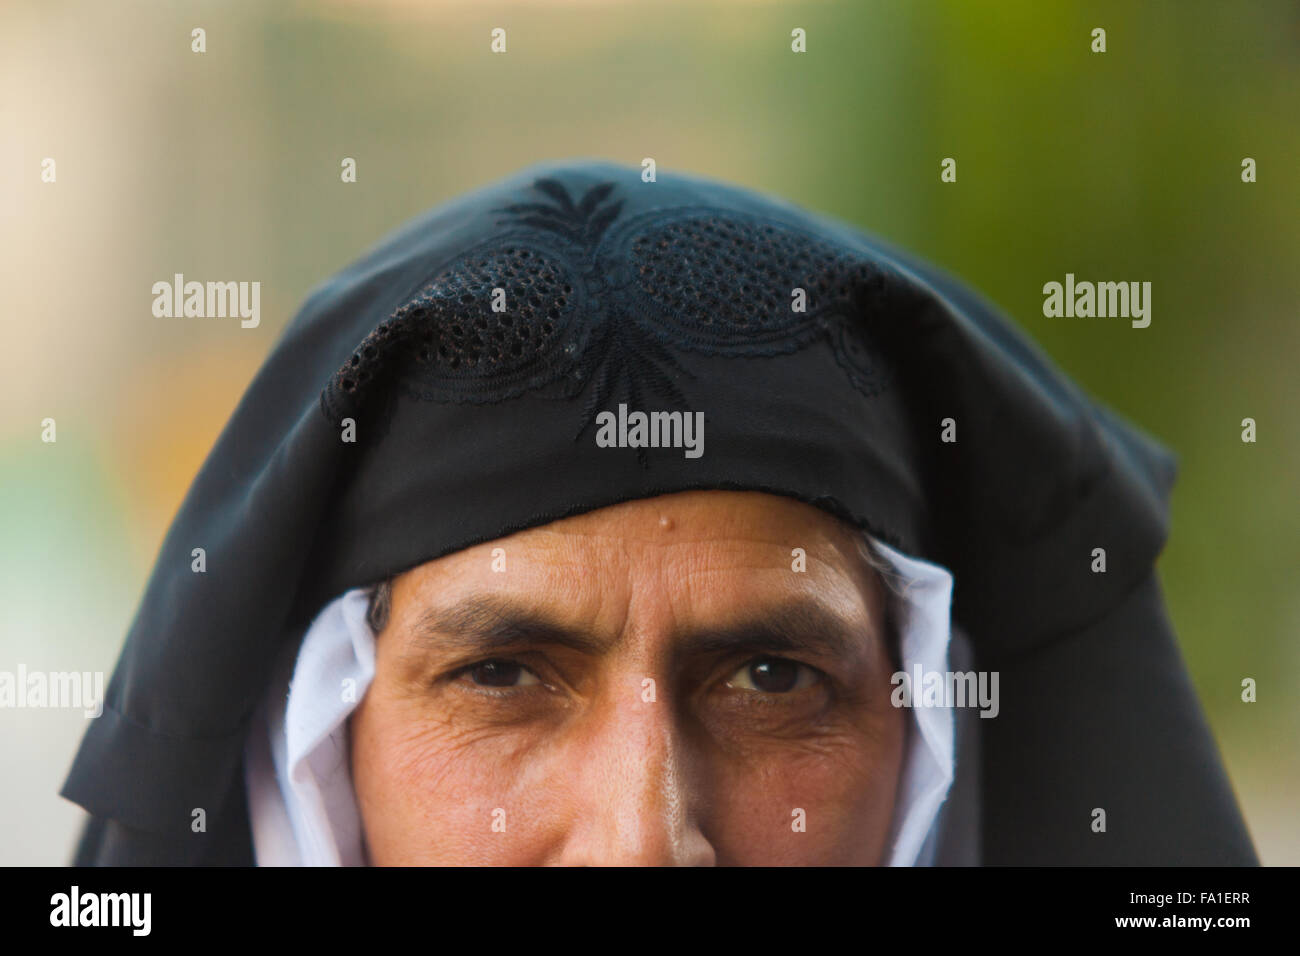 Half face portrait of Kashmiri muslim woman wearing pulled back black niqab full face veil exposing her face and - Stock Image